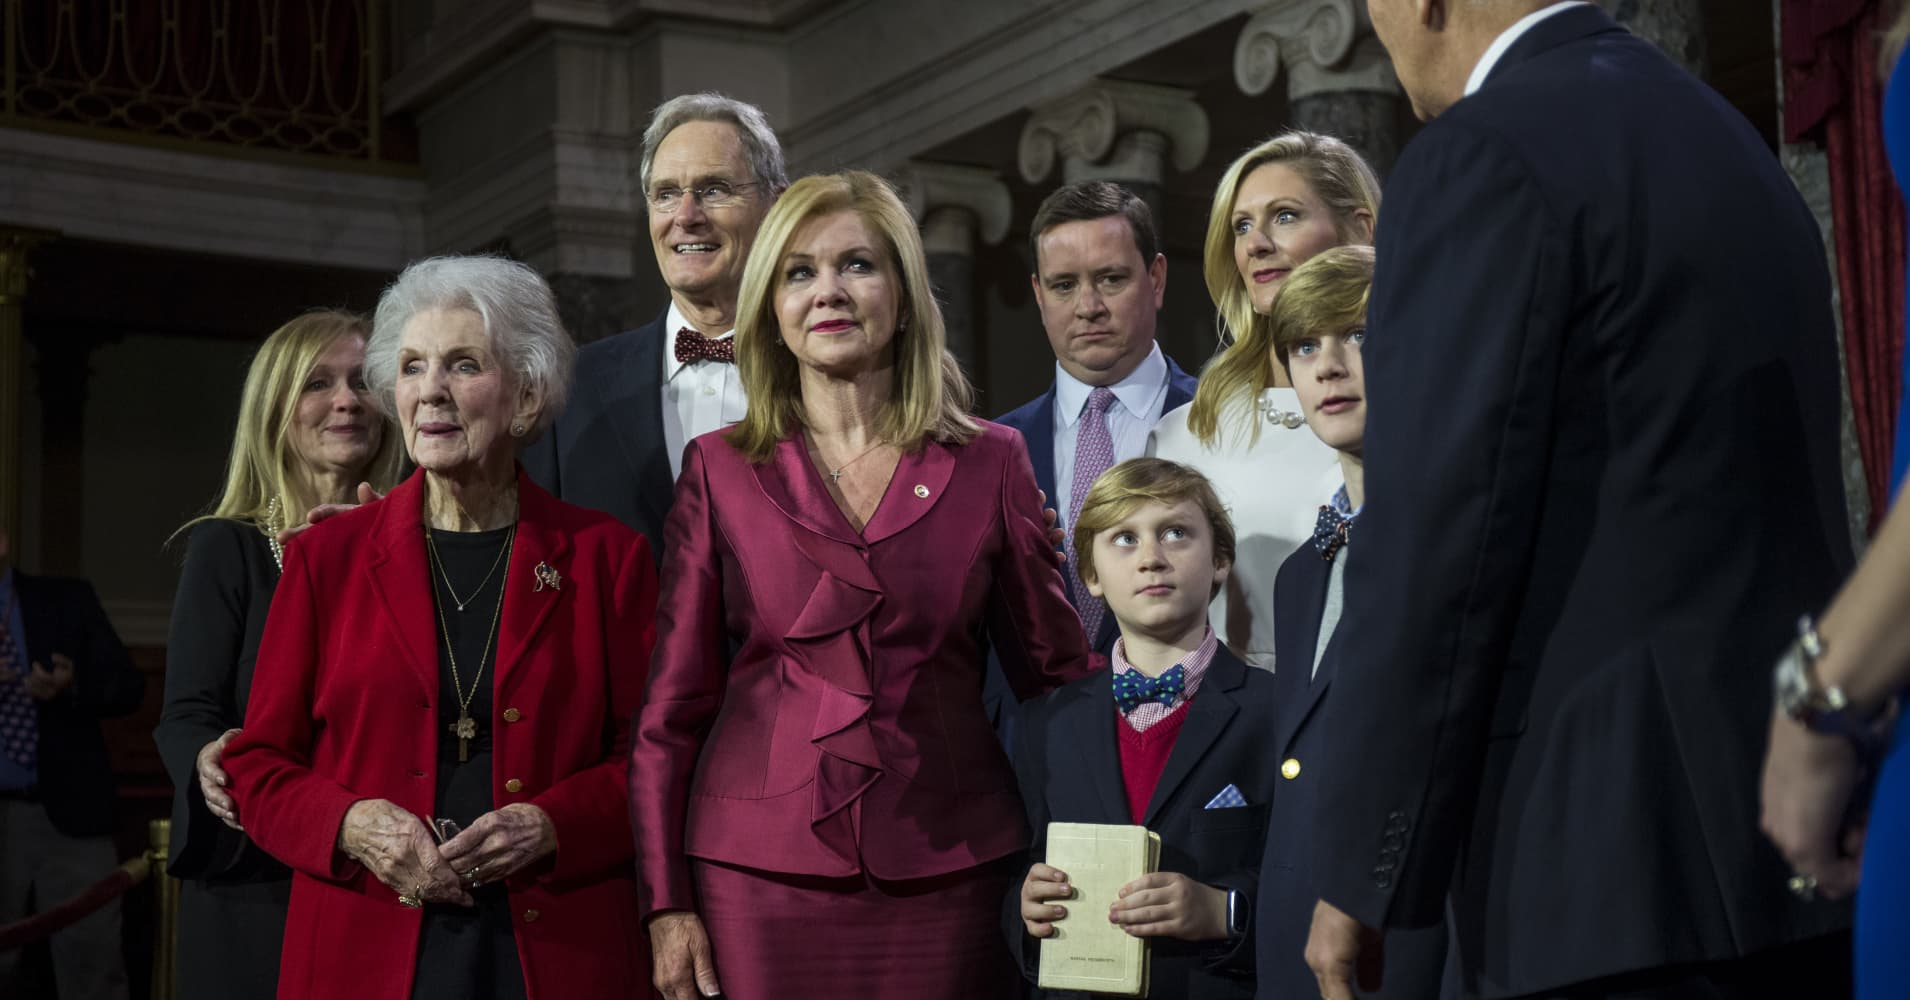 Senator Marsha Blackburn (R-TN) participates in a mock swearing in ceremony with Vice President Mike Pence on Capitol Hill on January 3, 2019 in Washington, DC.